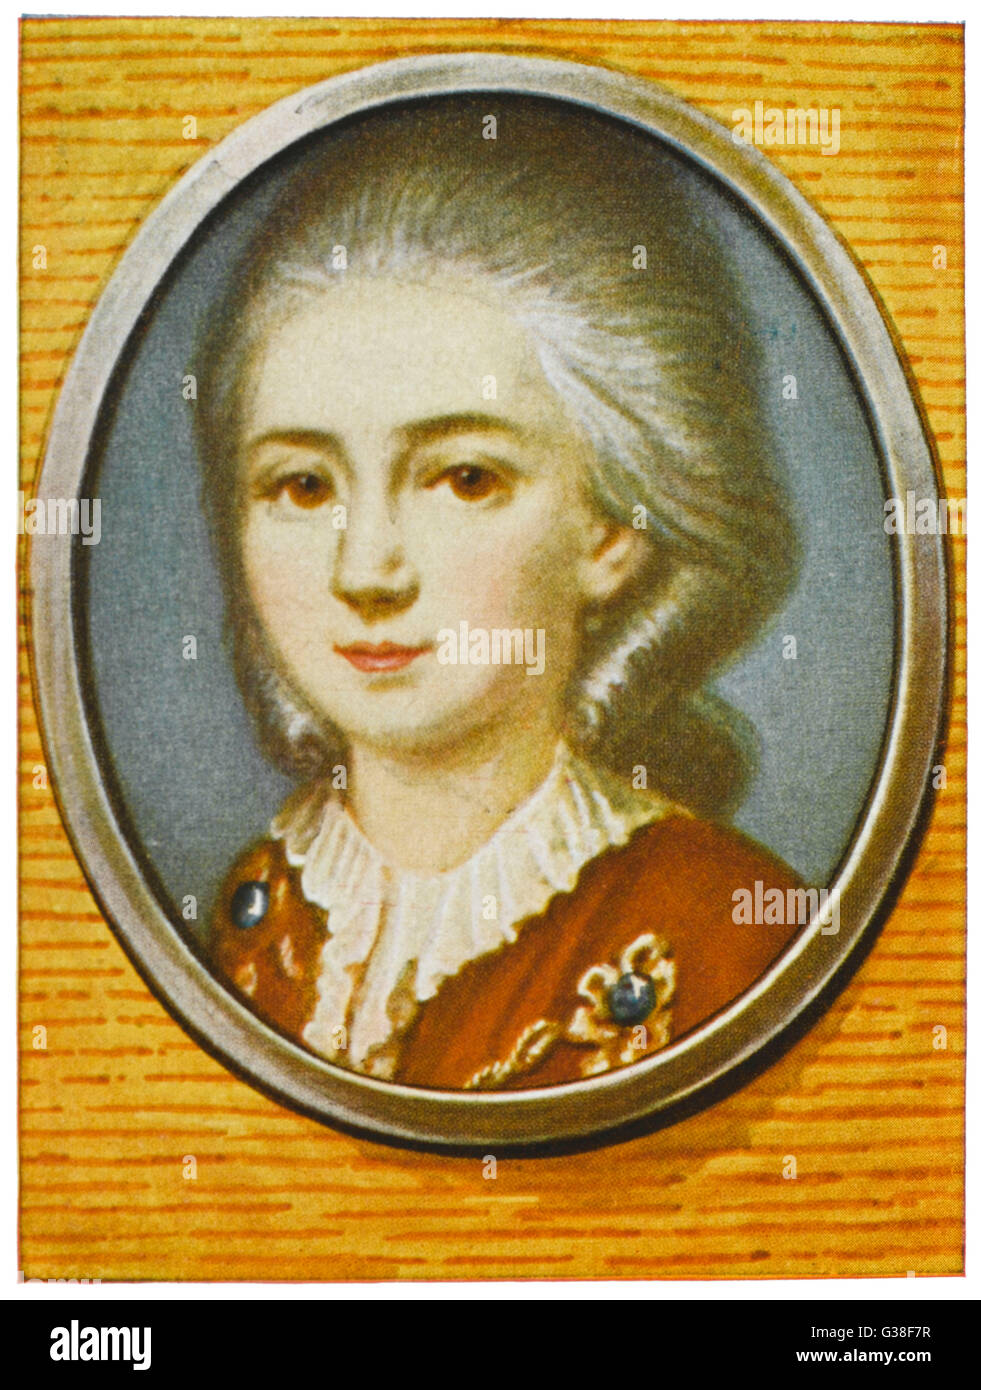 WOLFGANG AMADEUS MOZART  the Austrian composer as a  young man       Date: 1756 - 1791 - Stock Image